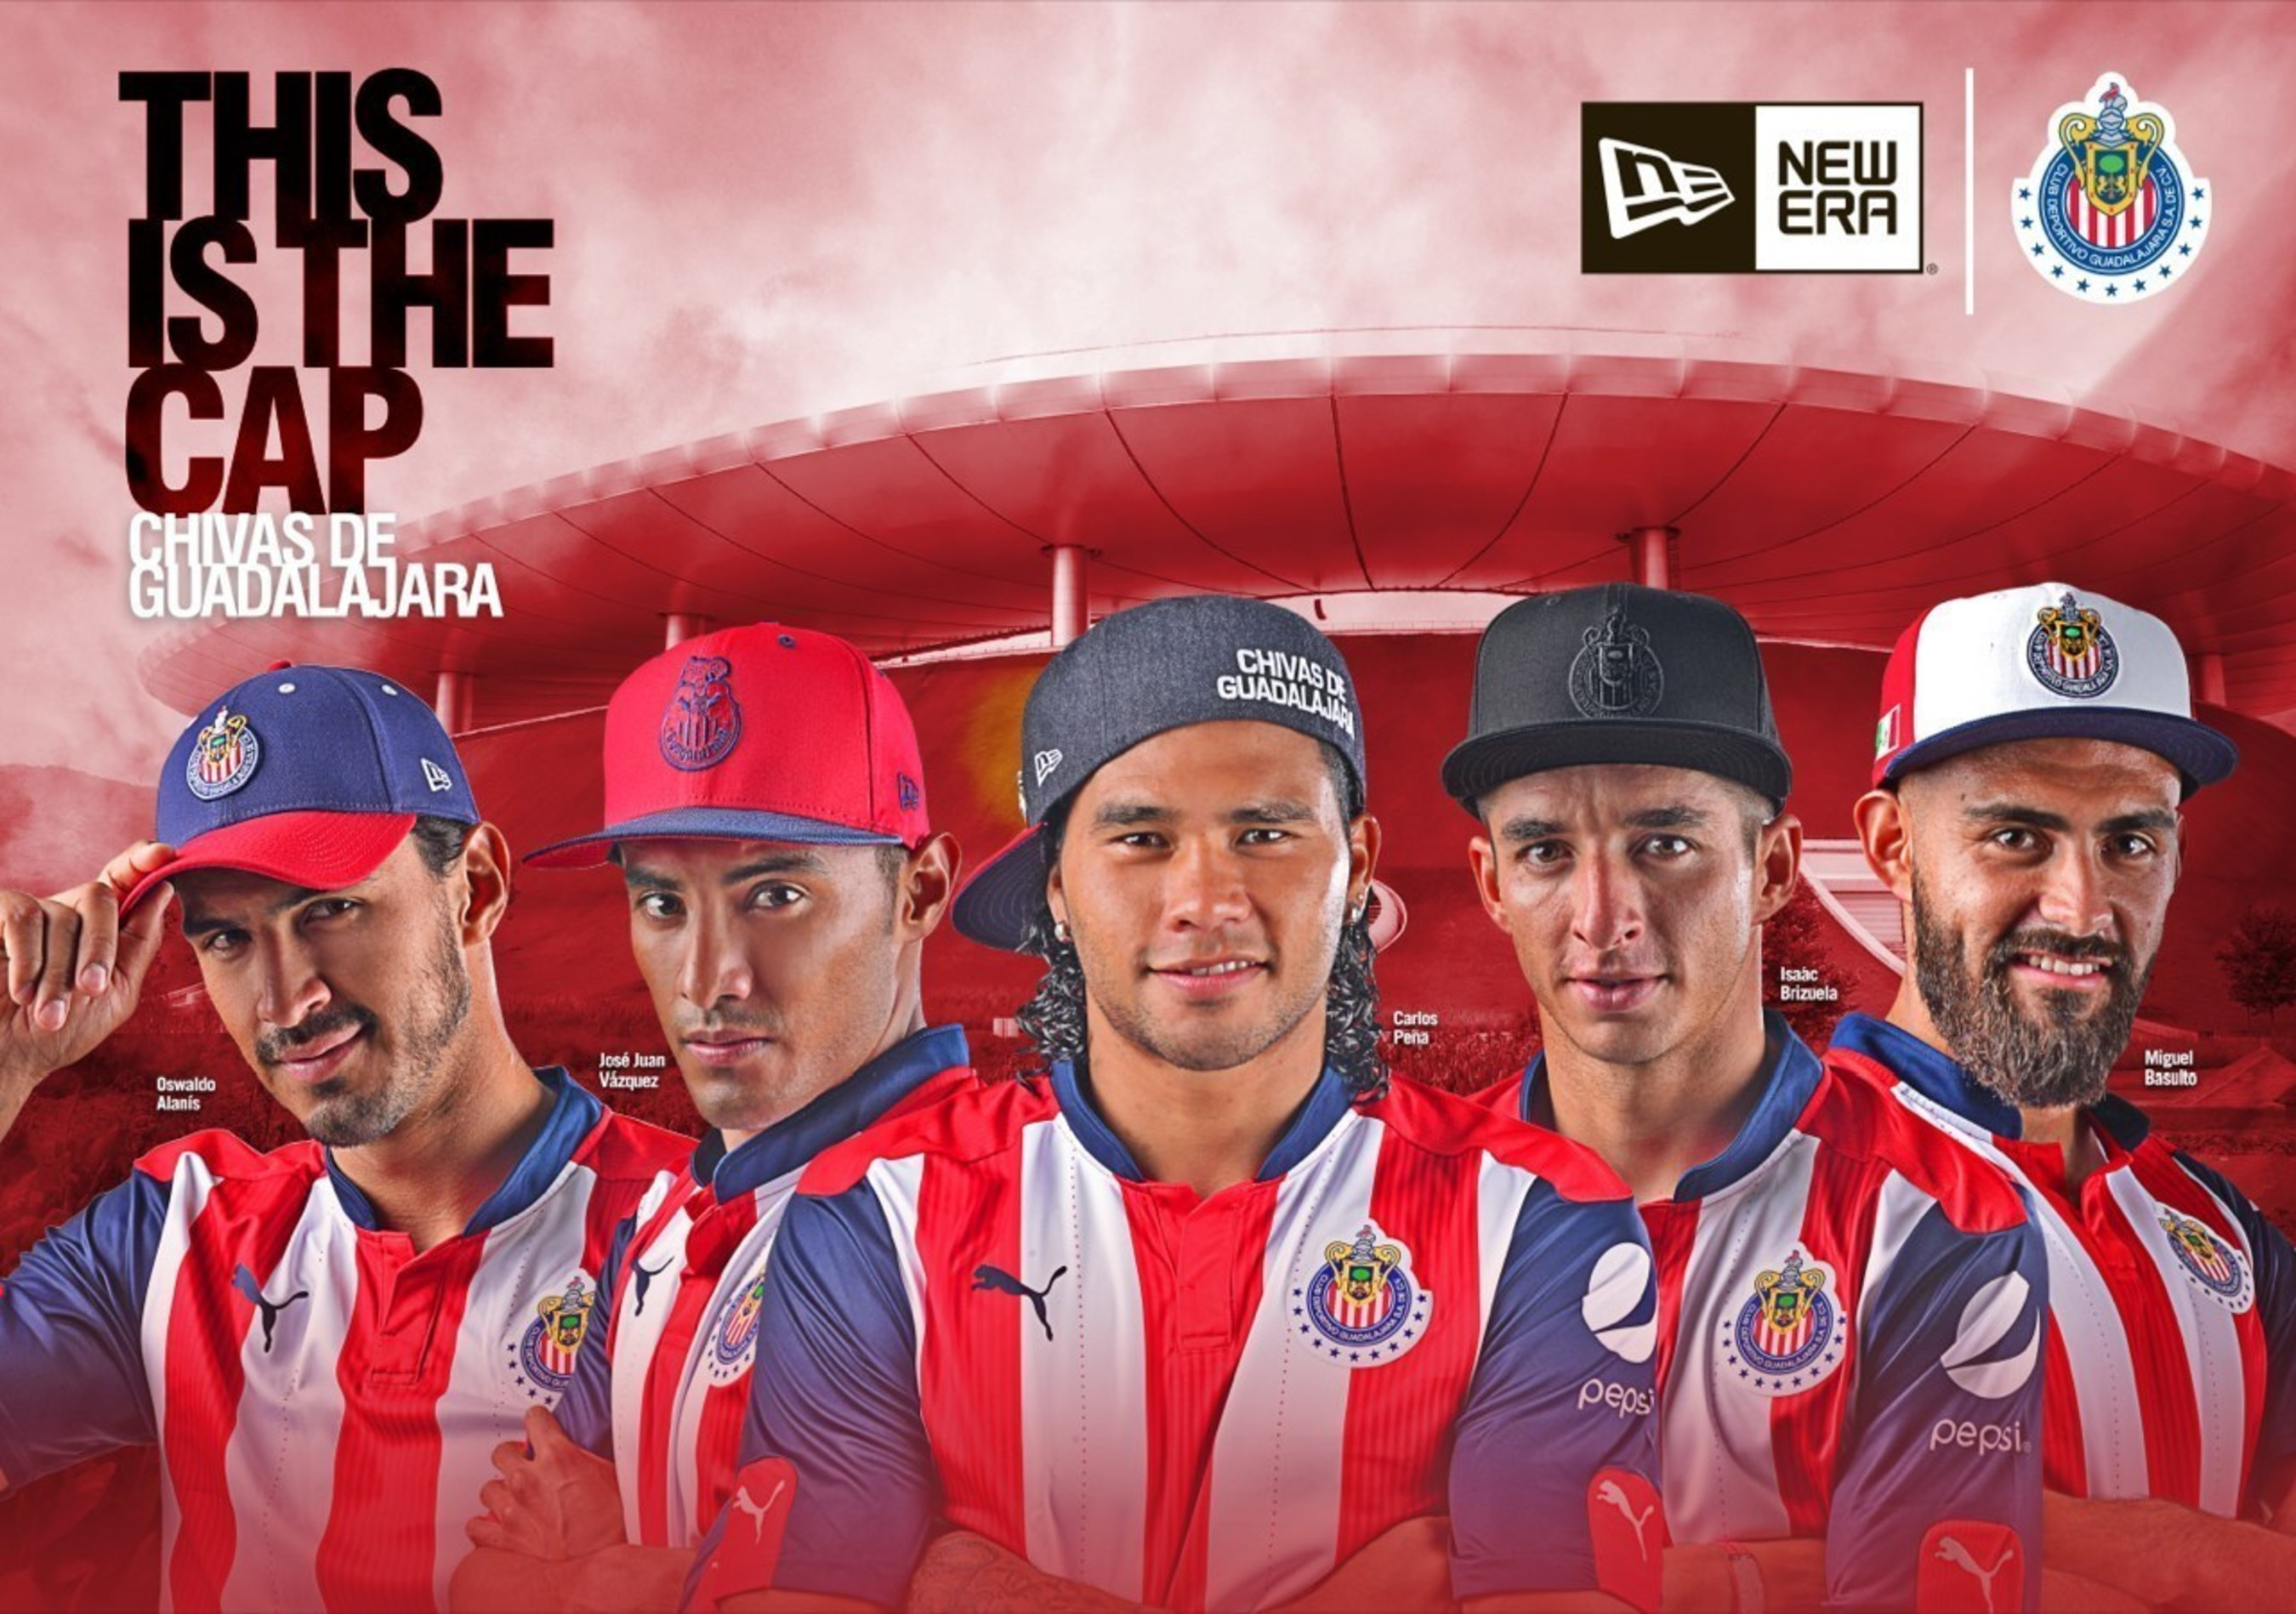 New Era Signs Deal With Chivas